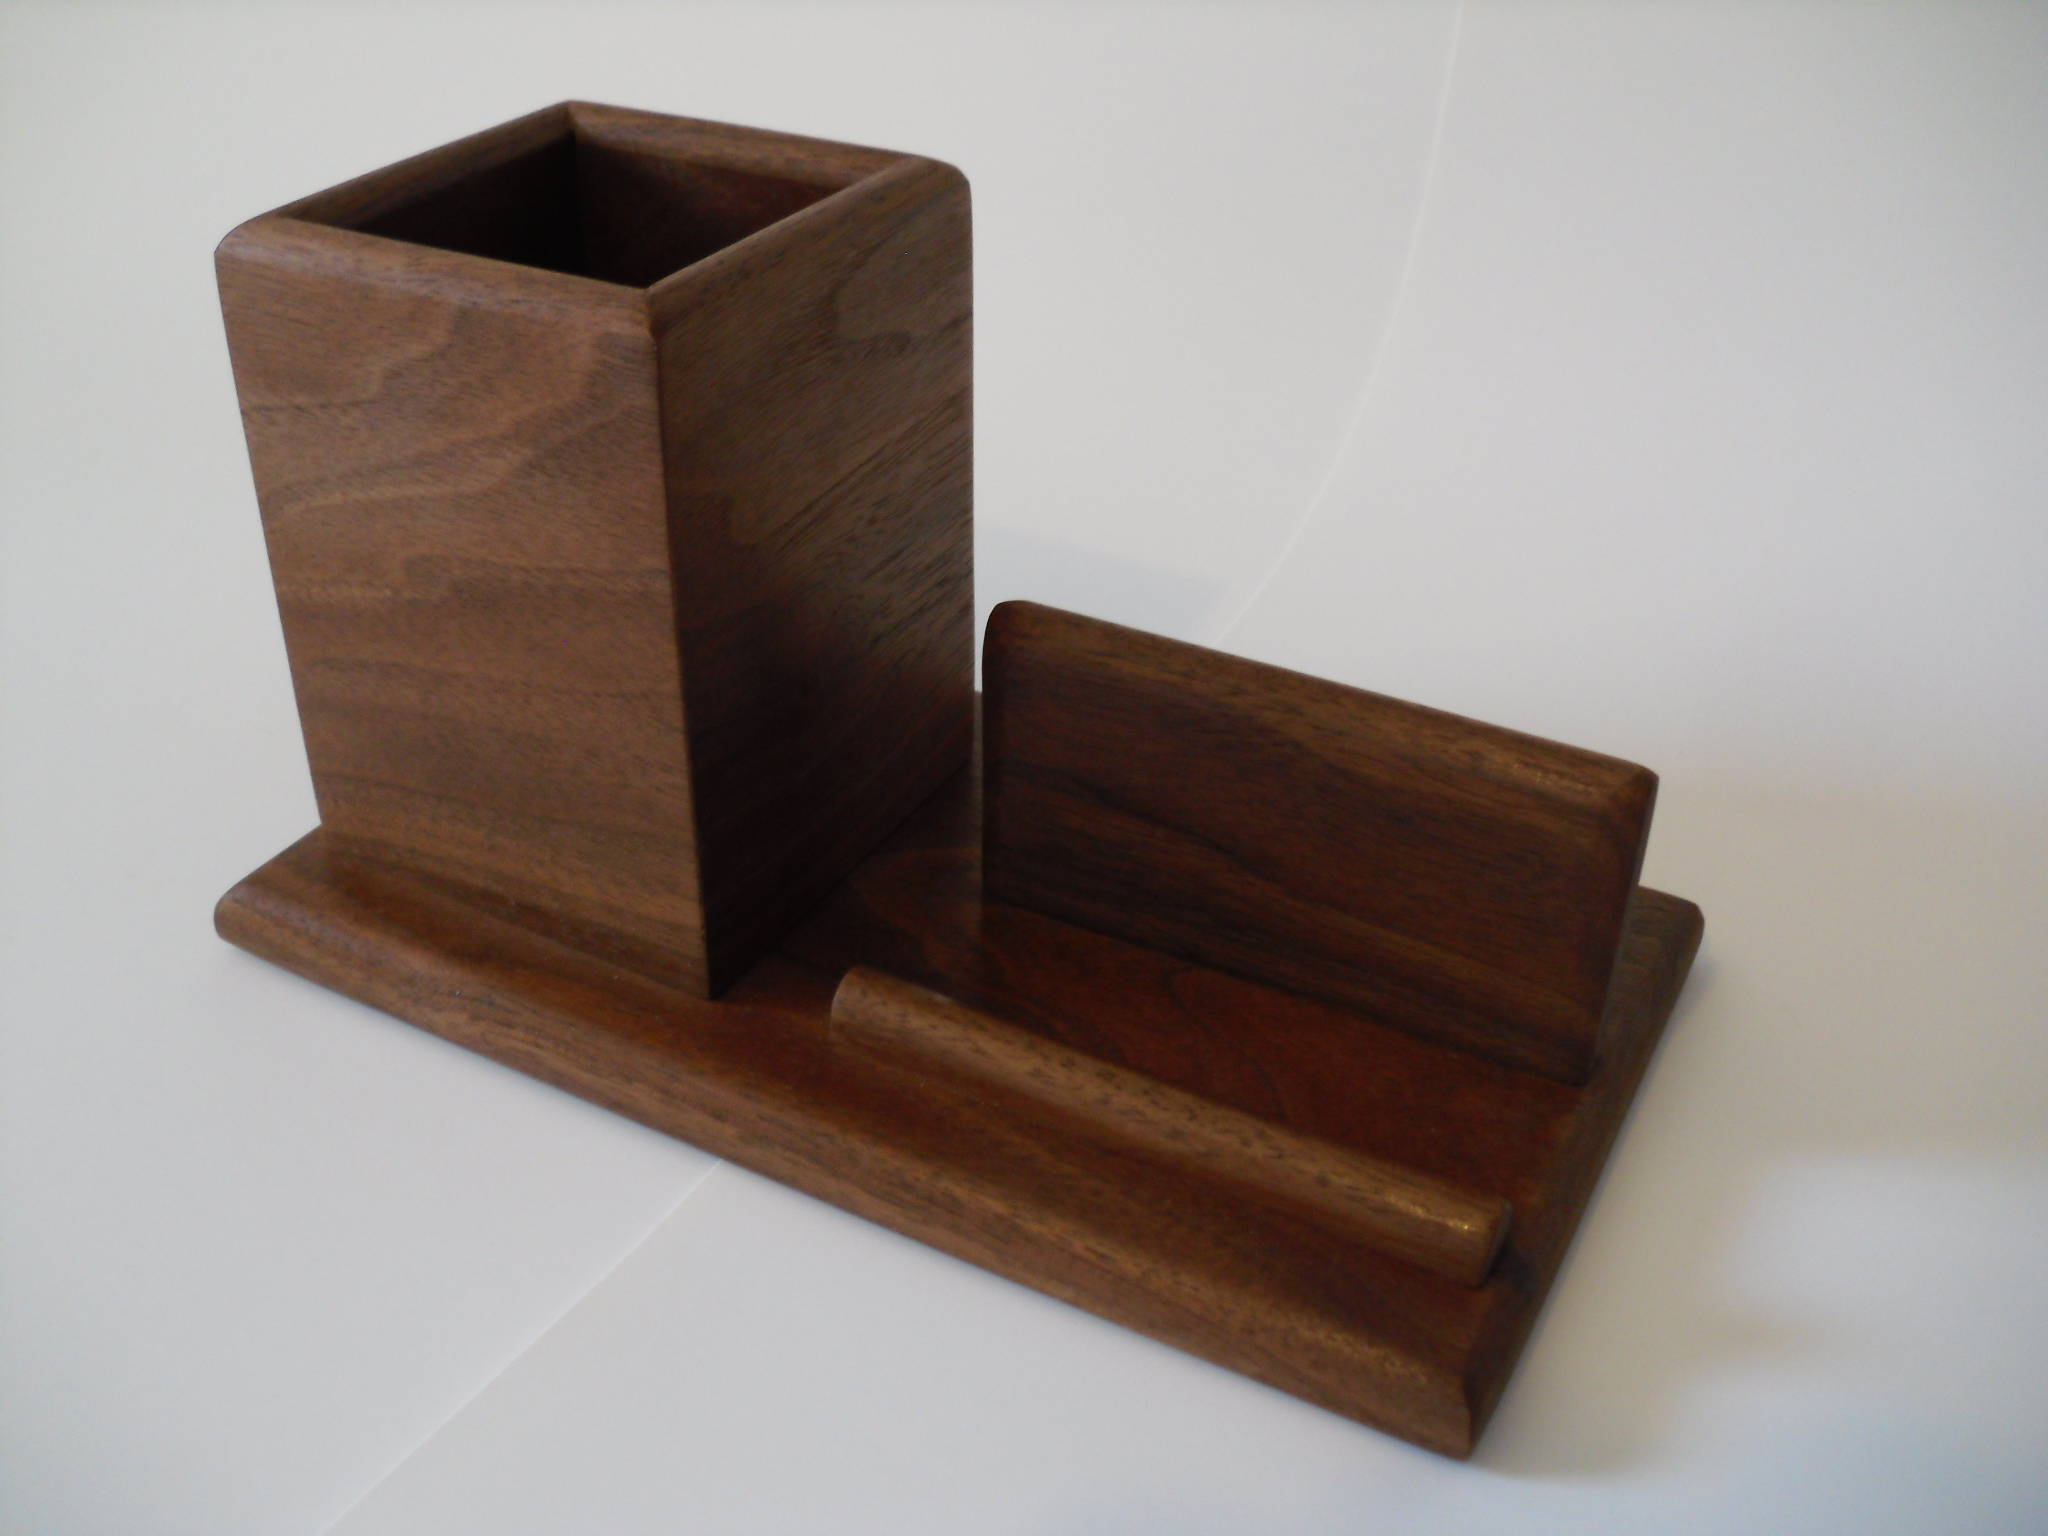 Homedecor business card and pen holders simple desk accent with a required purpose made with only high quality woods they are sure to be a focal point in your reheart Choice Image